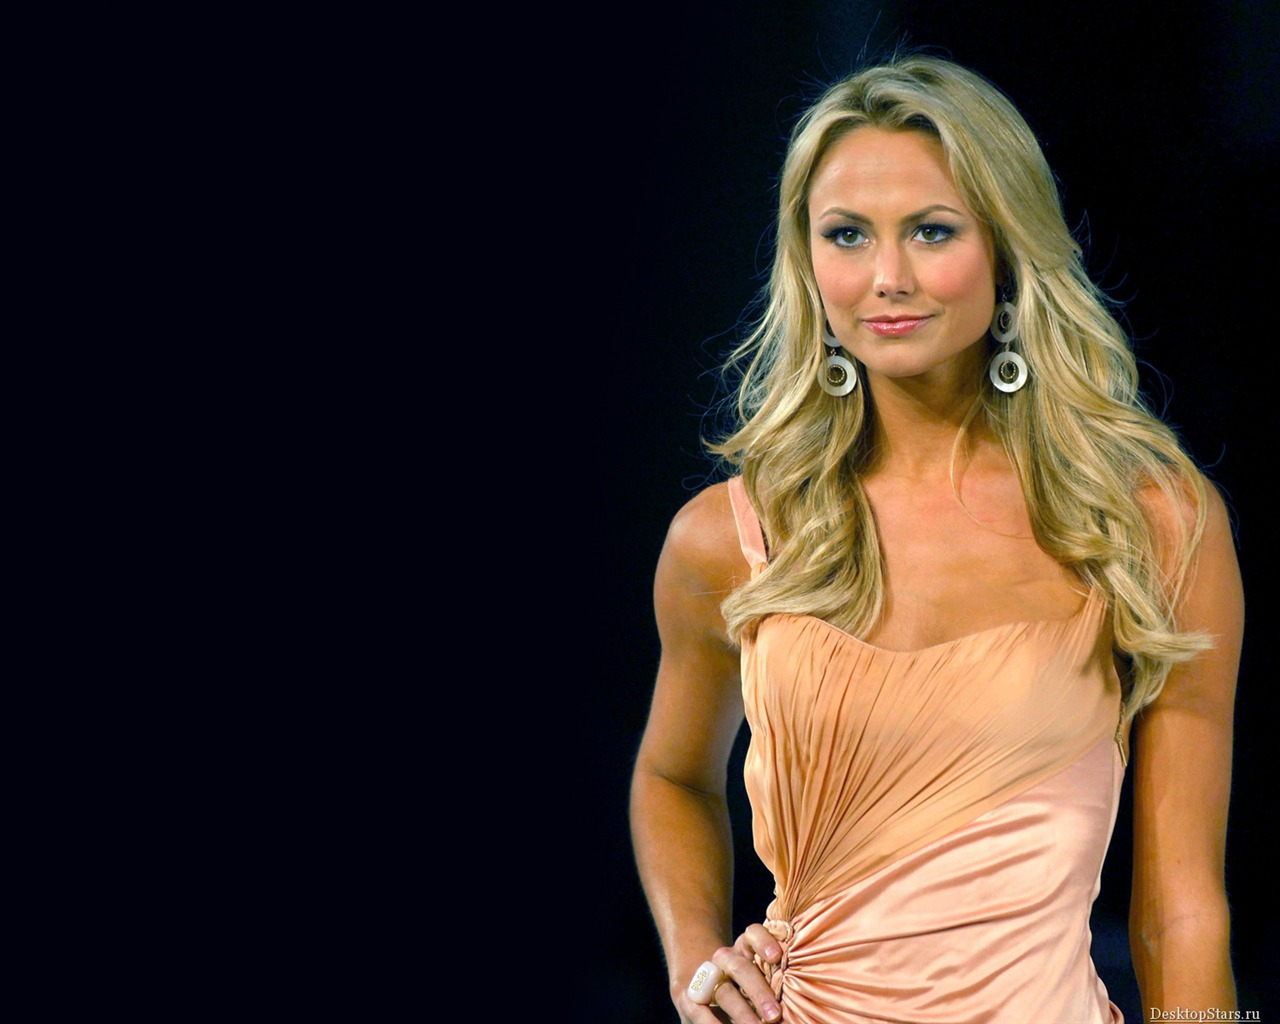 Stacy Keibler #038 - 1280x1024 Wallpapers Pictures Photos Images